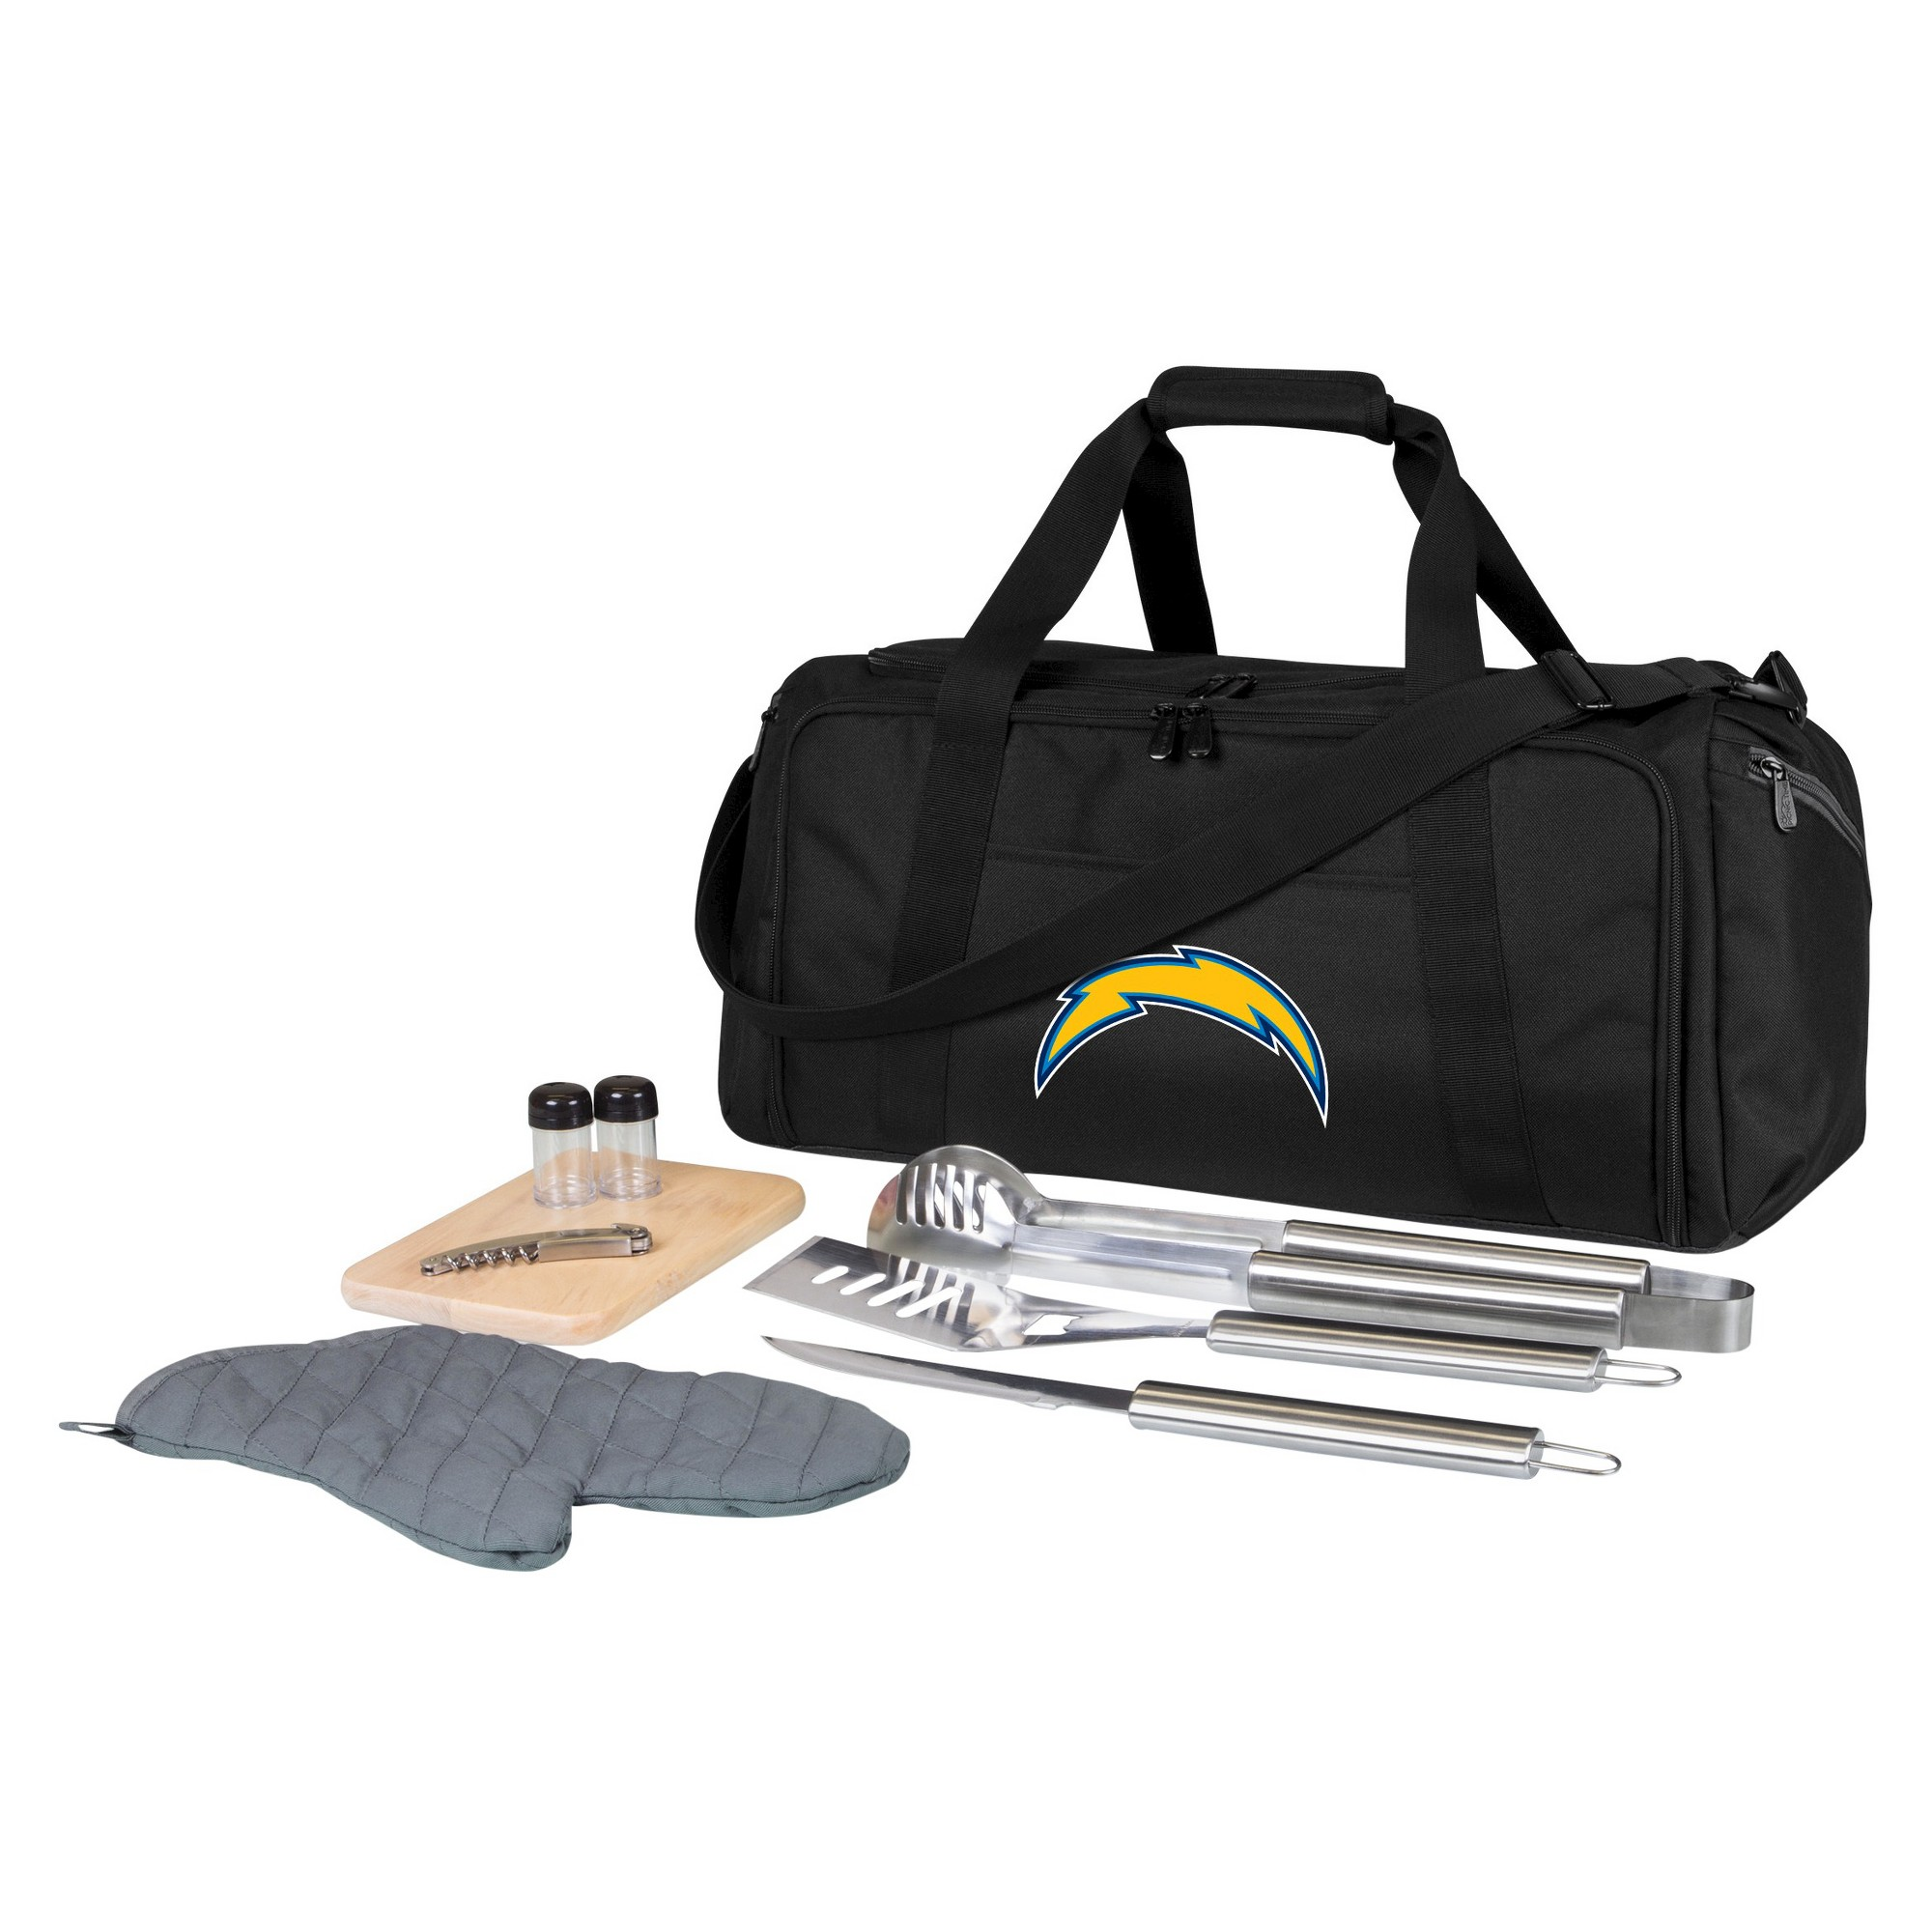 Los Angeles Chargers Bbq Grill Tools Kit With Duffel Bag San Diego Chargers Jacksonville Jaguars Carolina Panthers Indianapolis Colts